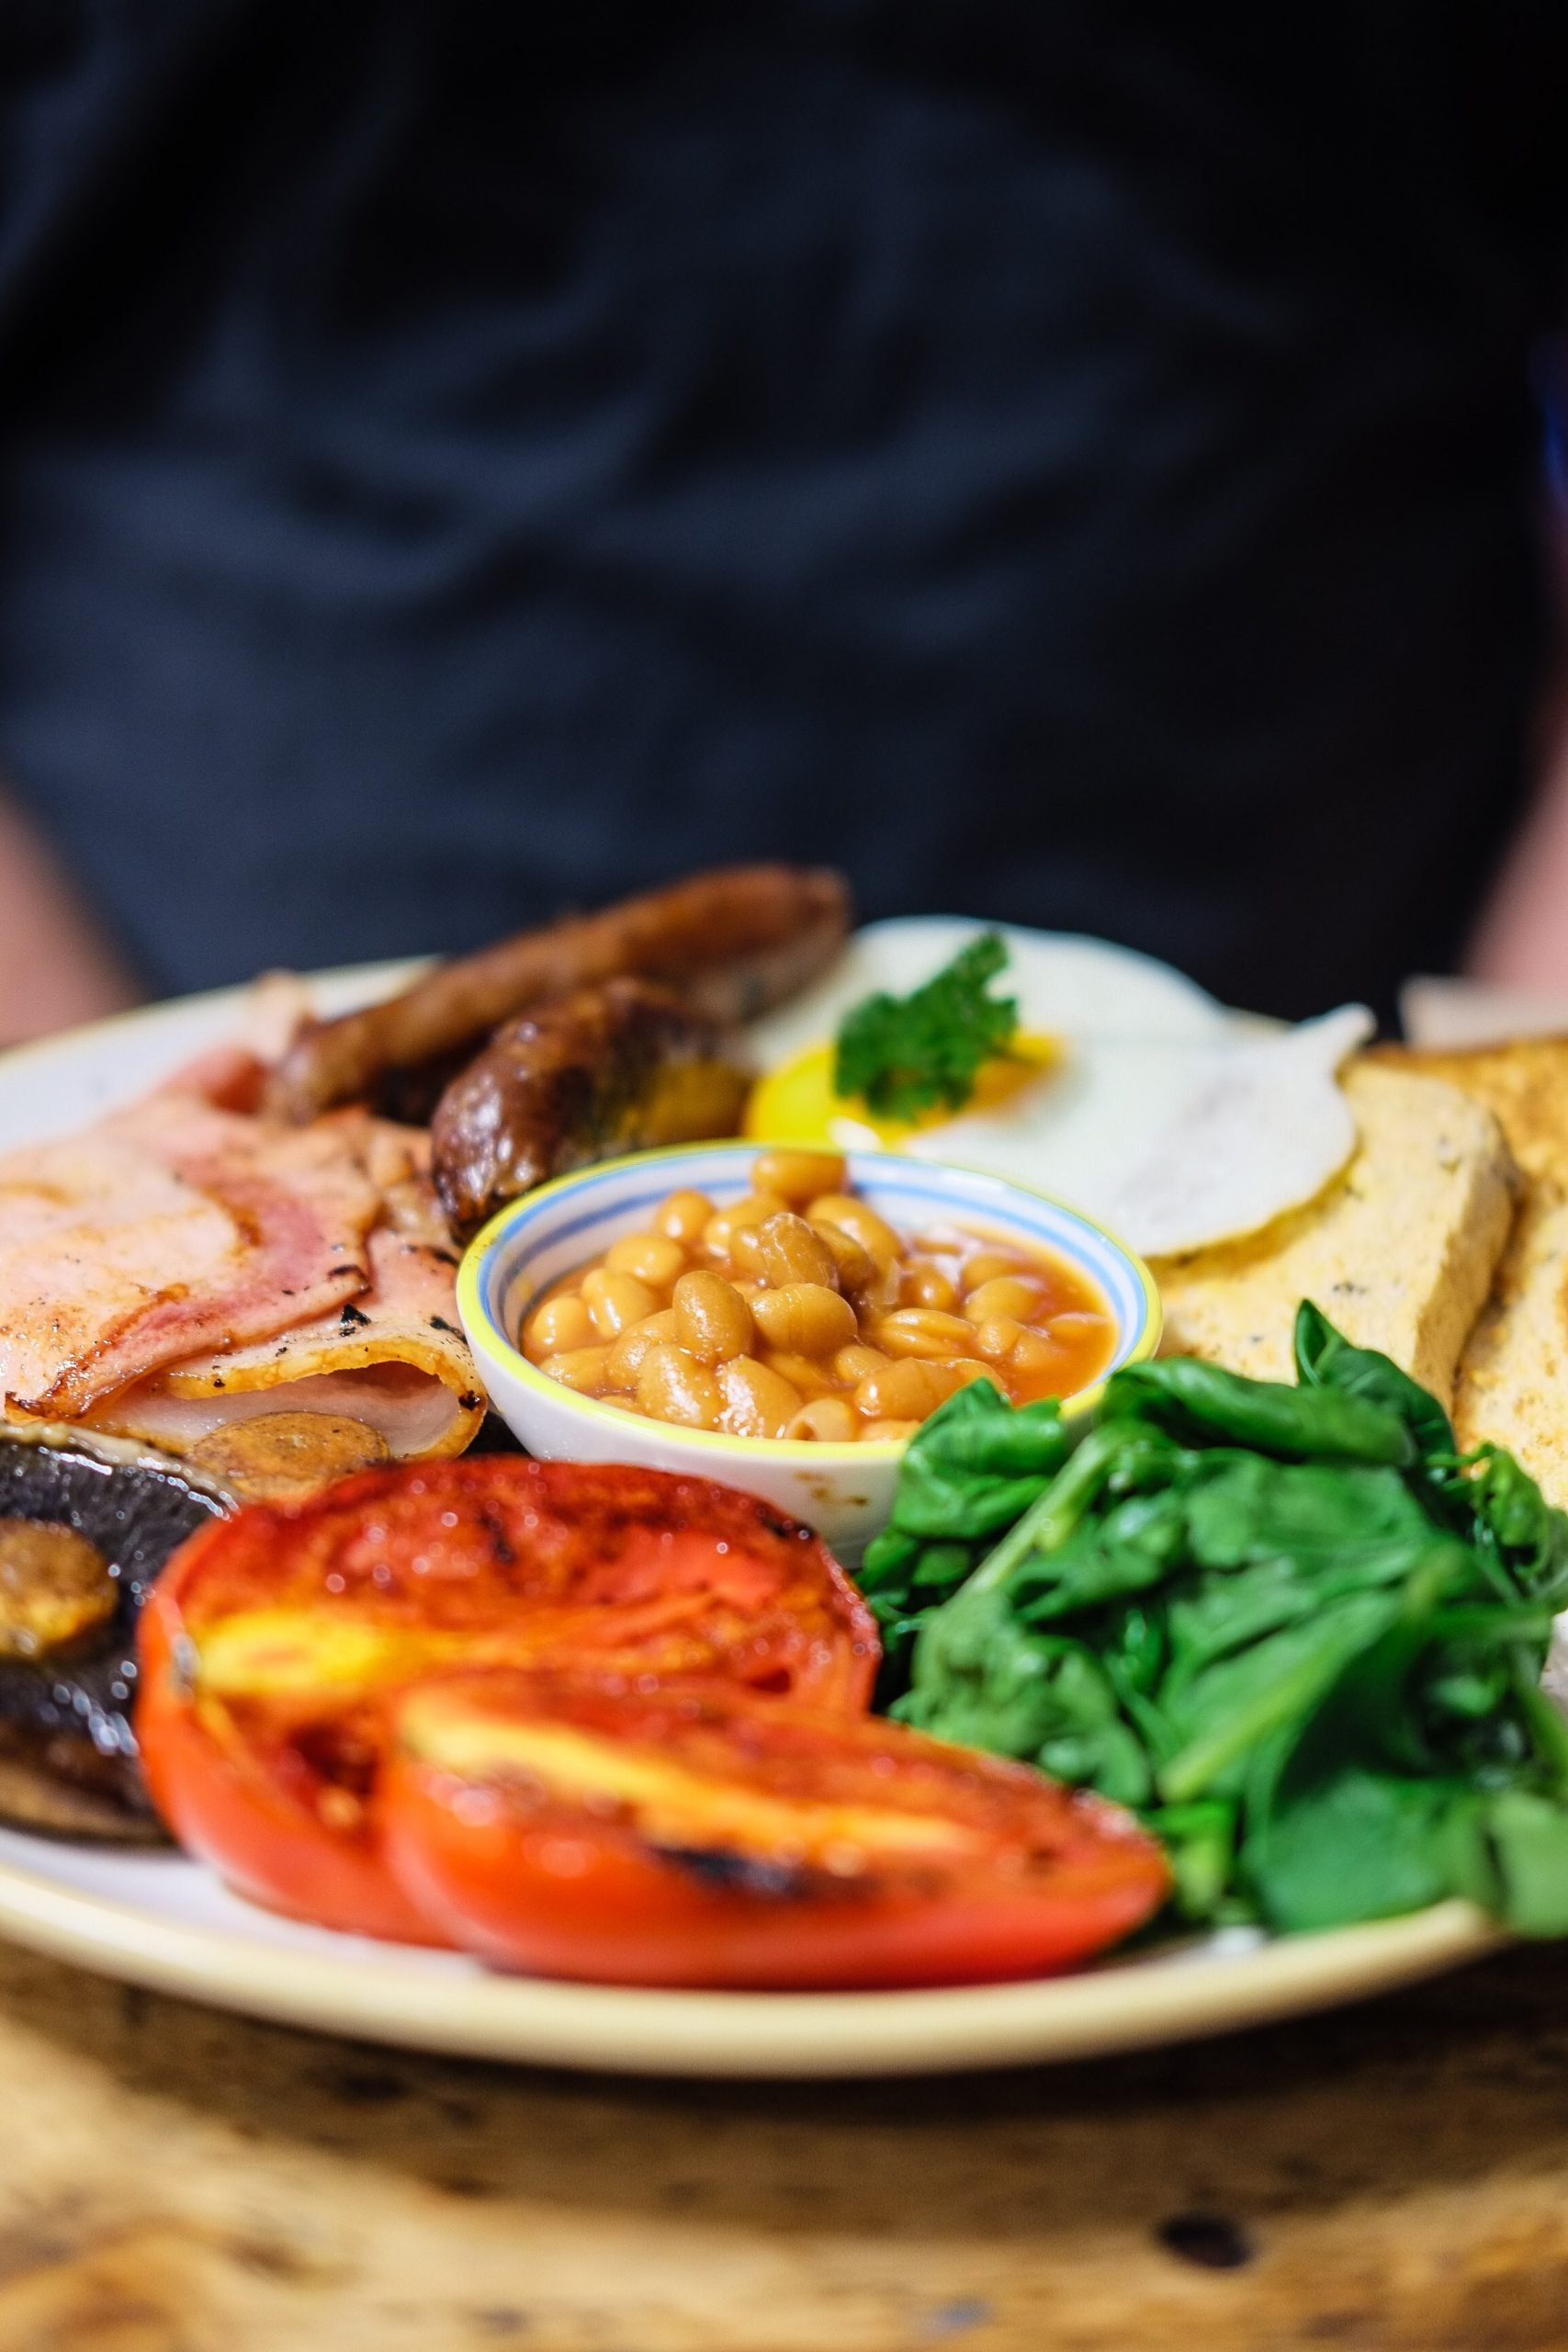 A cafe is challenging customers to eat a 17,000 calorie fry up in one hour